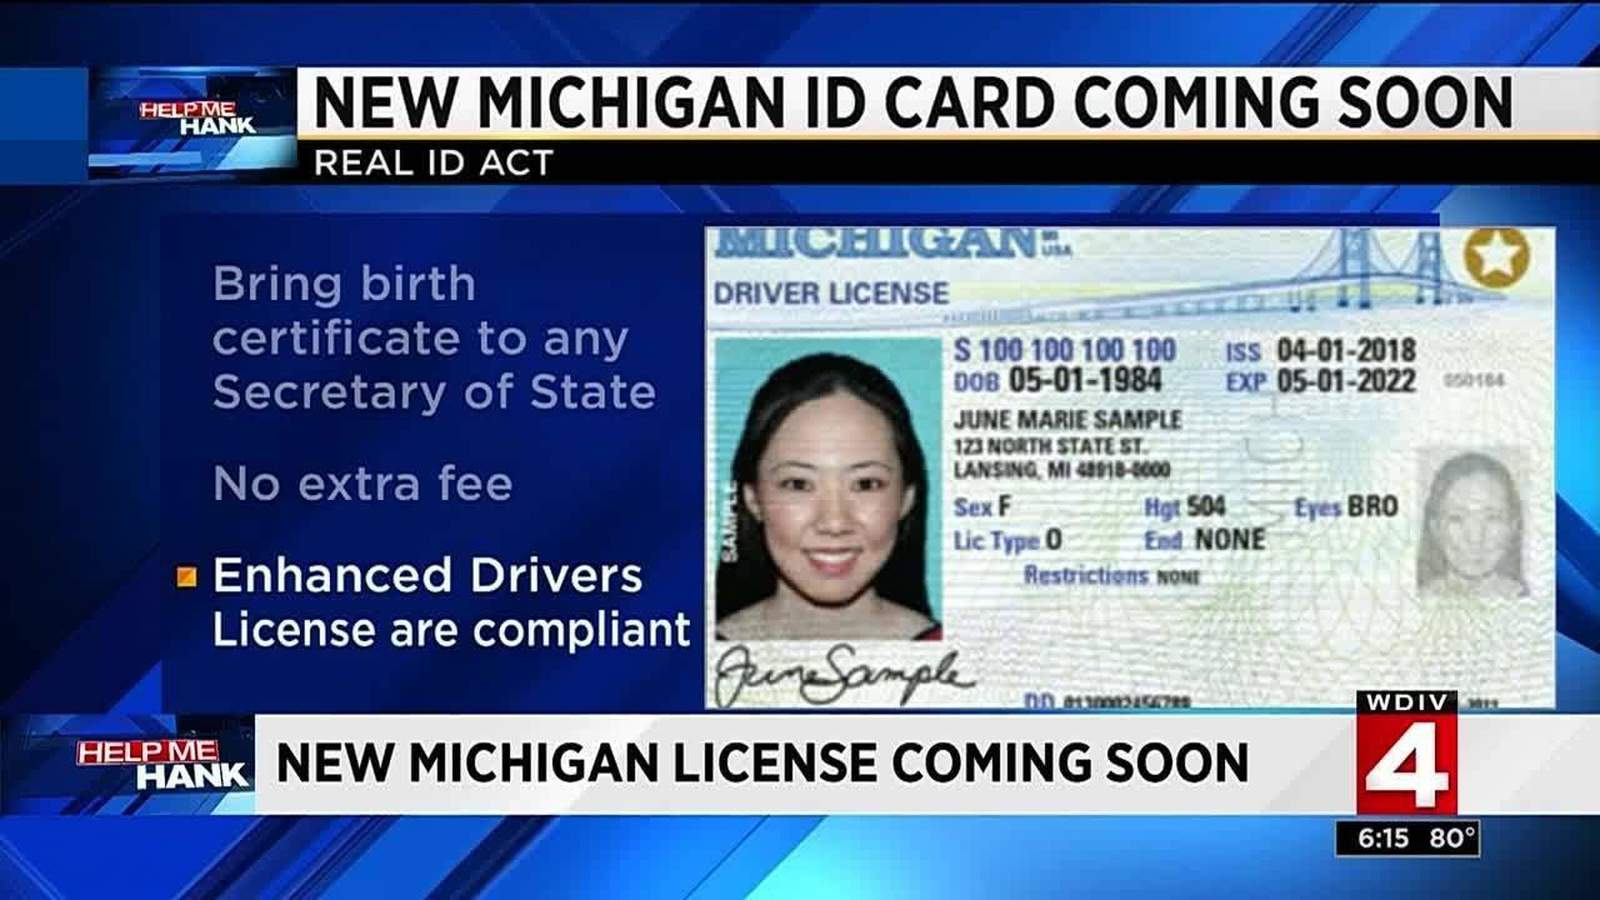 Real ID Act: Why you may need to apply for a new Michigan license, ID card  before 2020